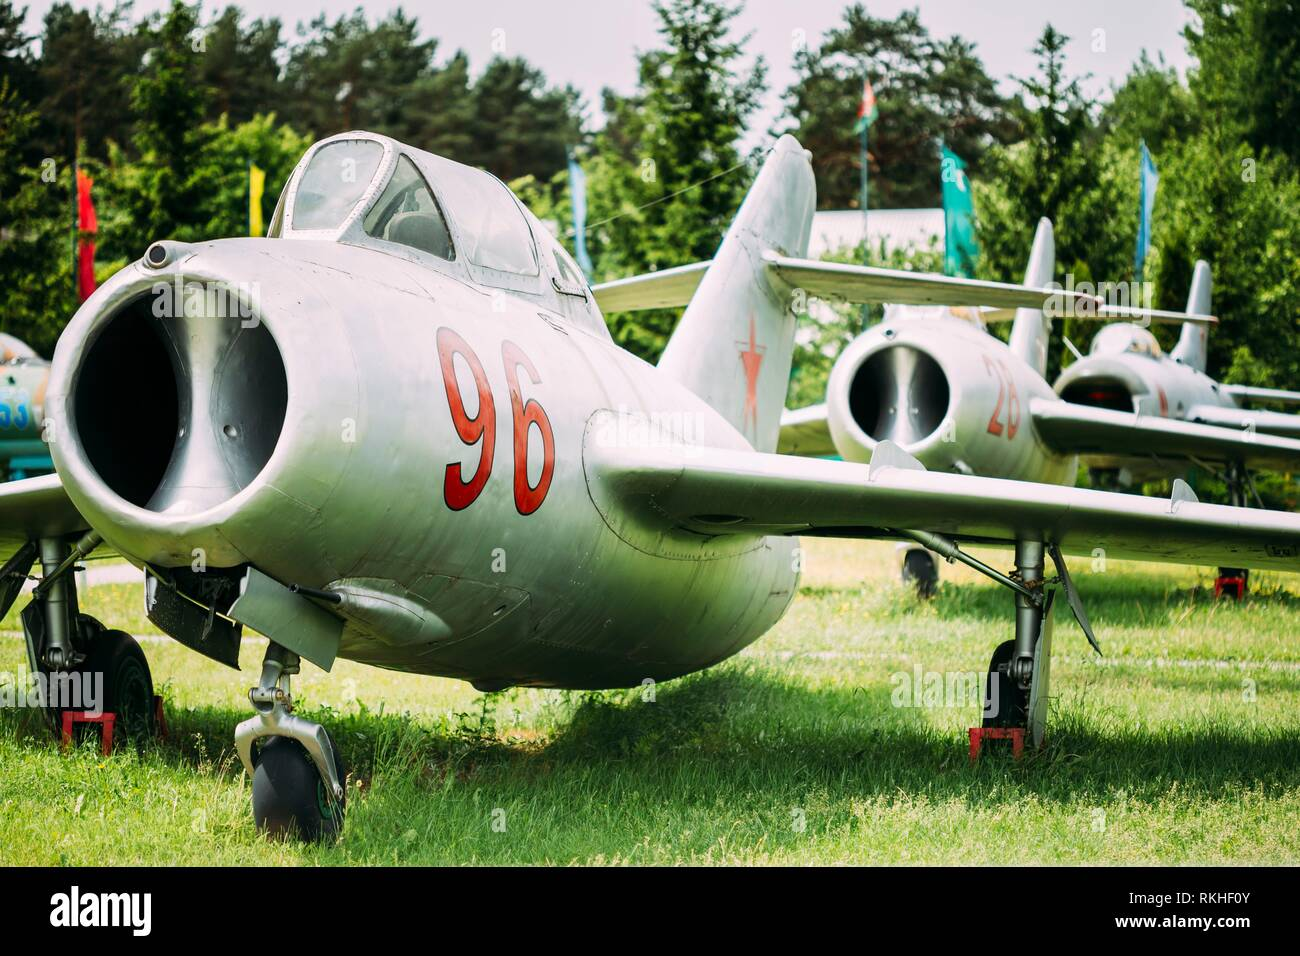 Old Russian Soviet Supersonic Military Plane Aircraft Fighter-bomber Stands At Aerodrome. - Stock Image